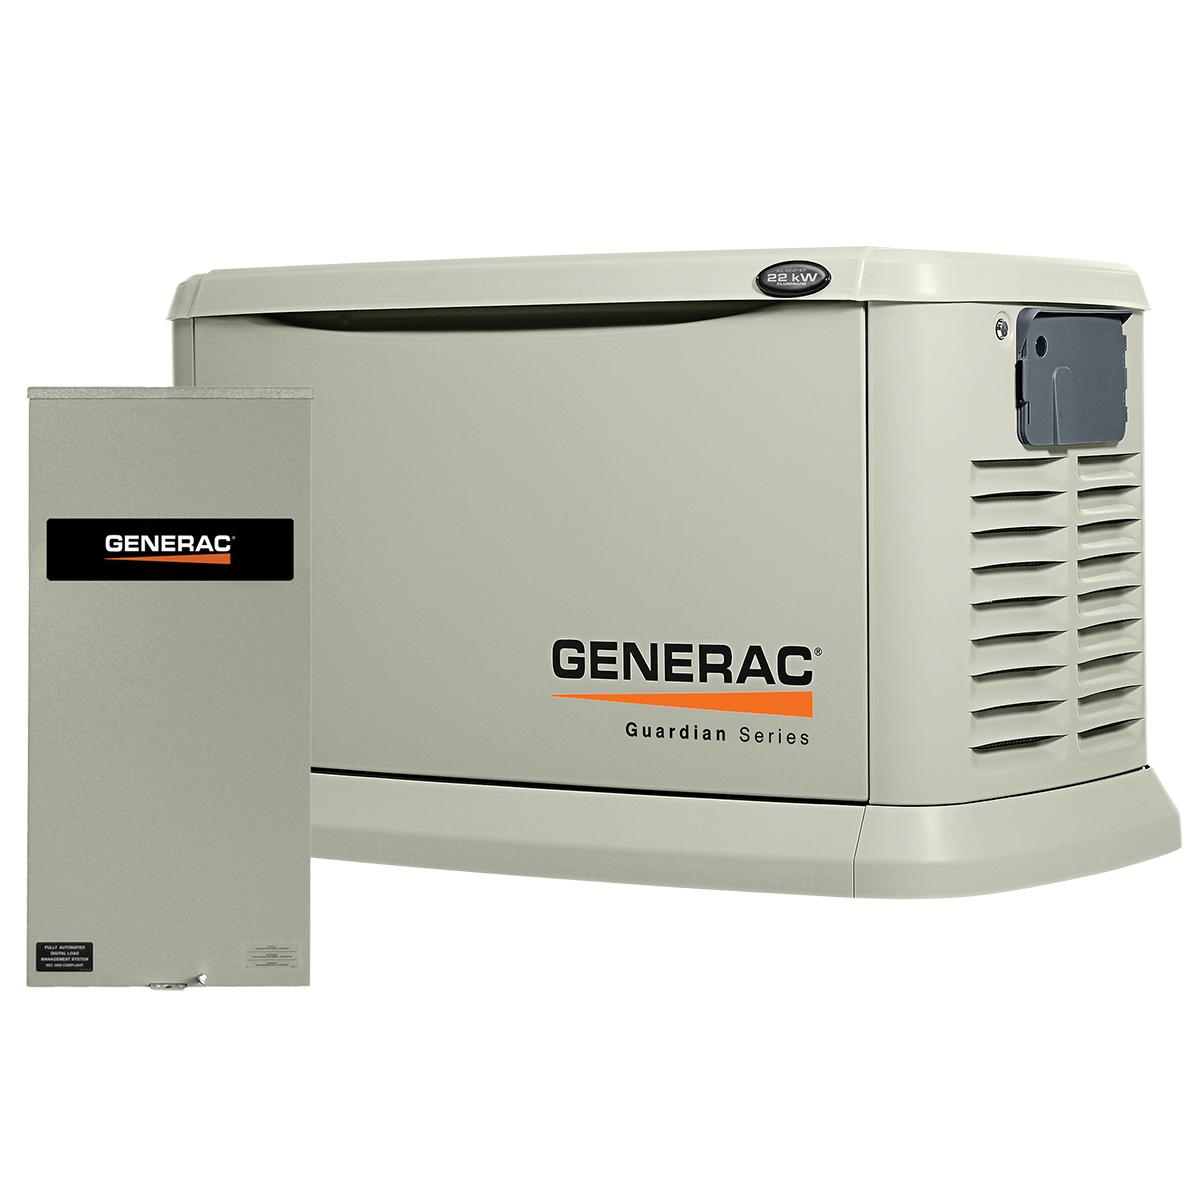 919e9 Wiring Diagram For Generac 22kw Free Download Wiring Resources